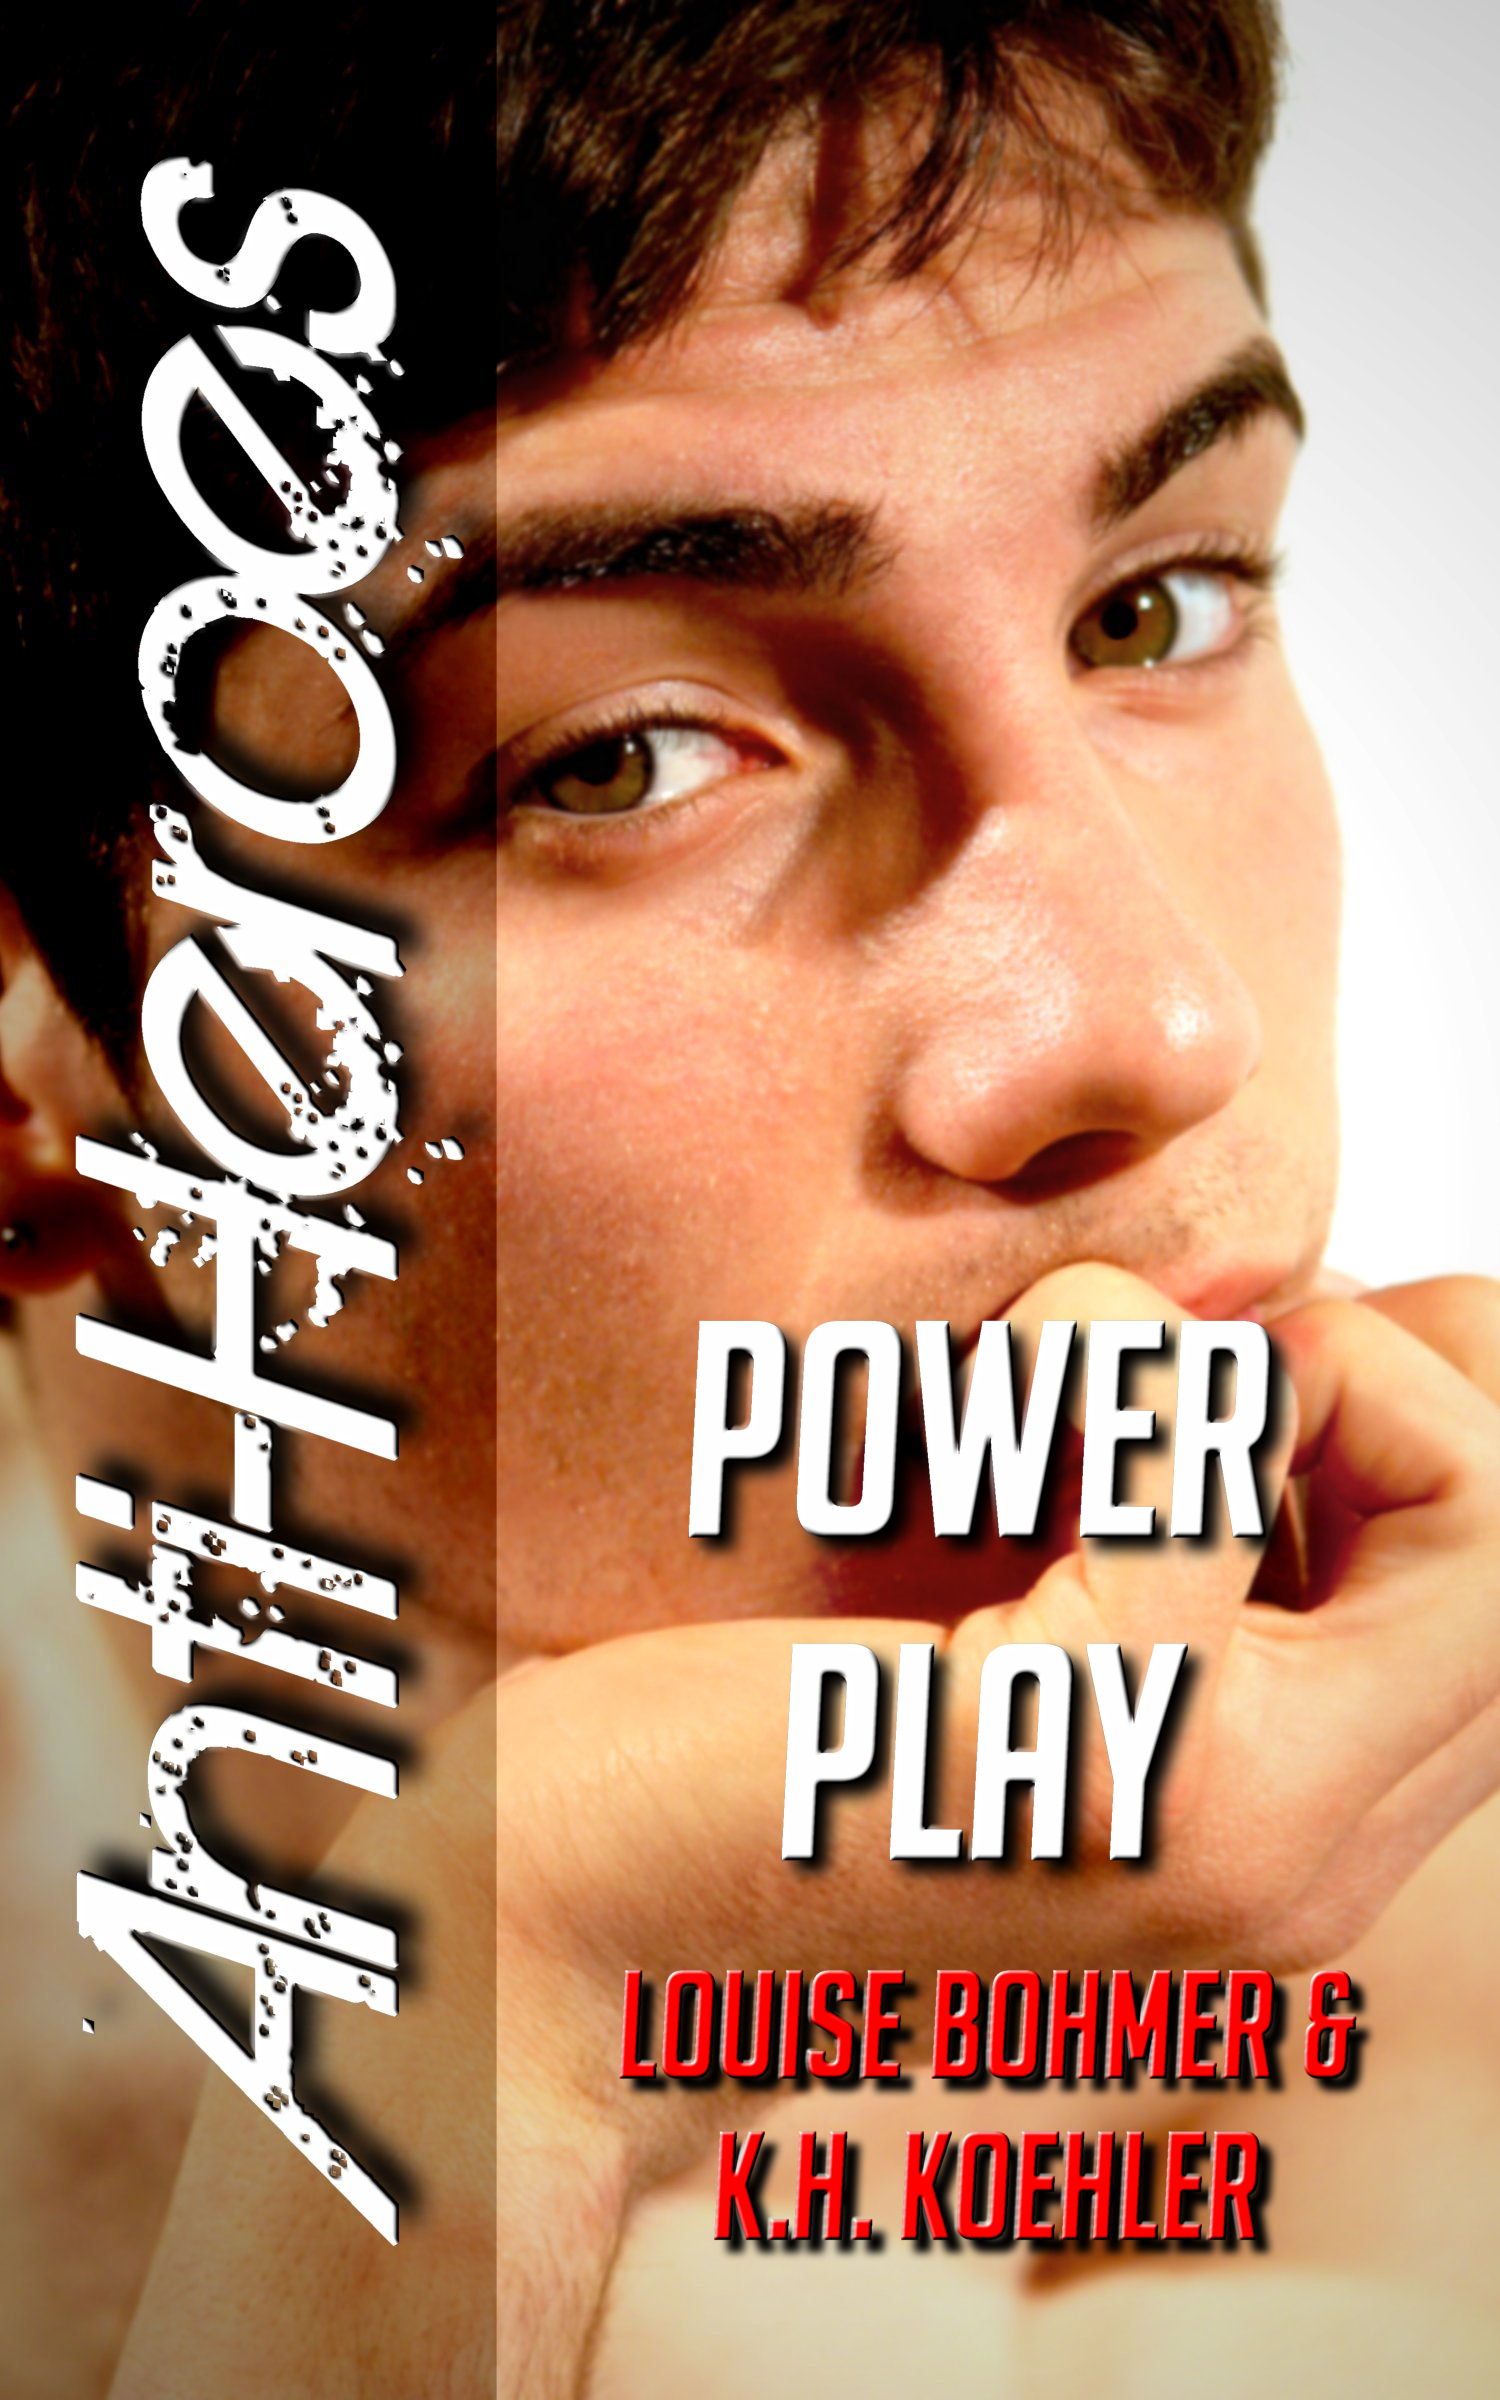 Power Play (Anti-Heroes Book IV)